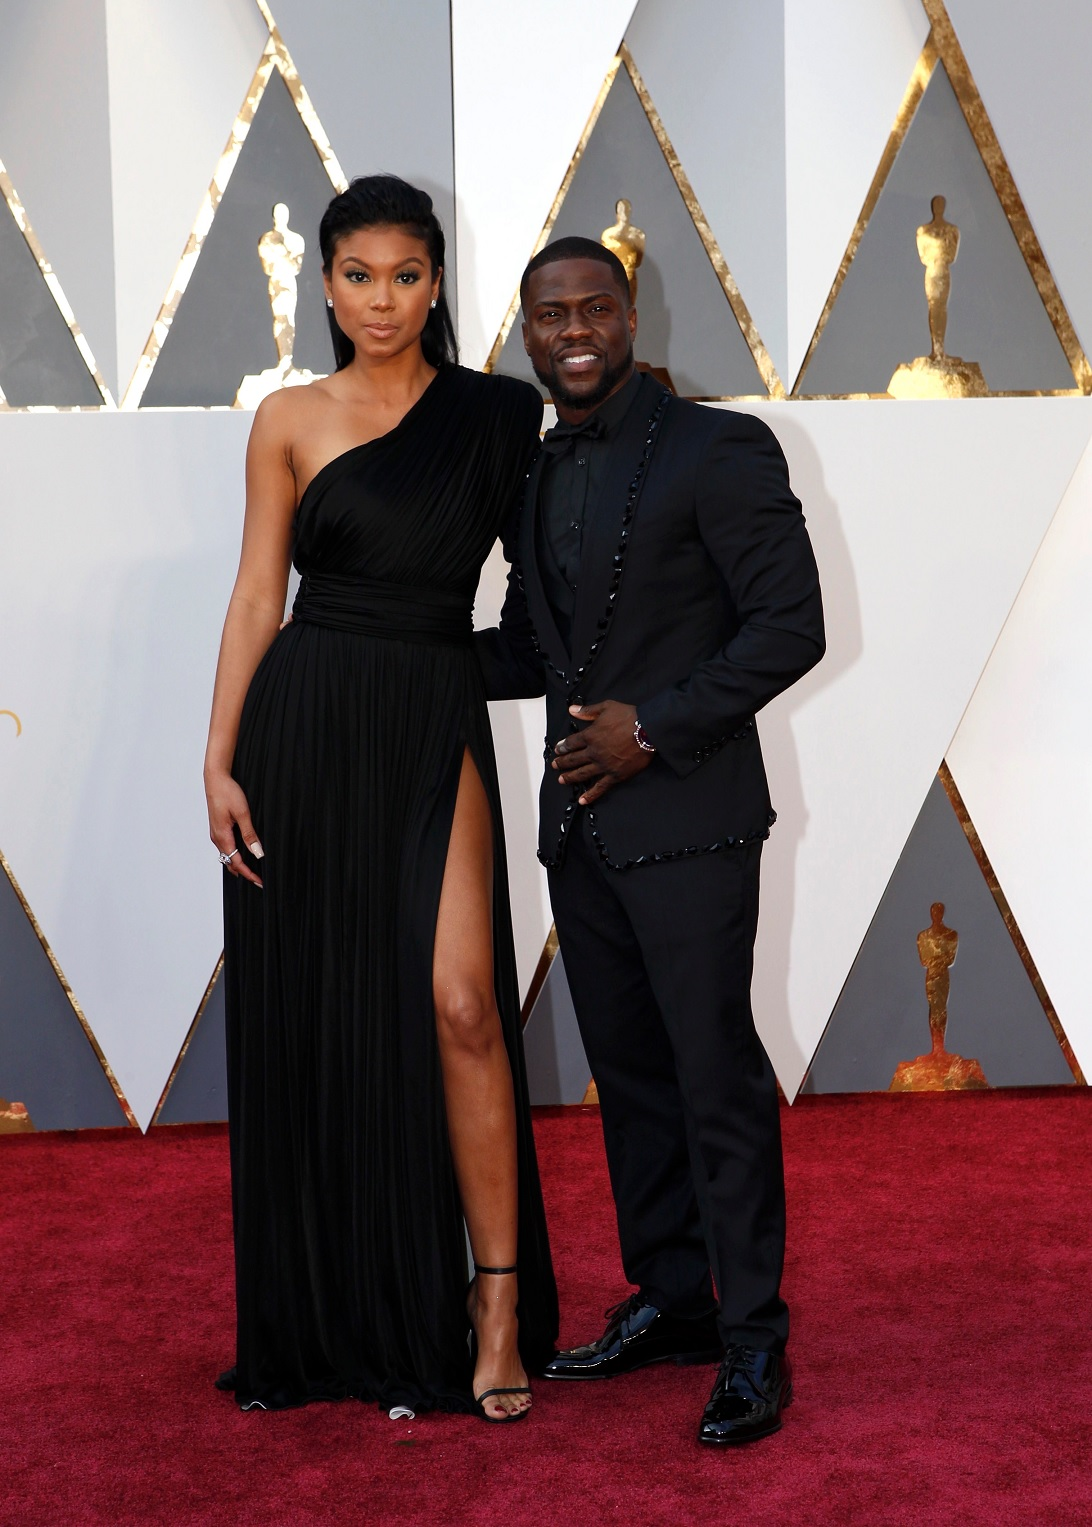 Oscars 2016 Best Dressed Eniko Parrish Black Dress